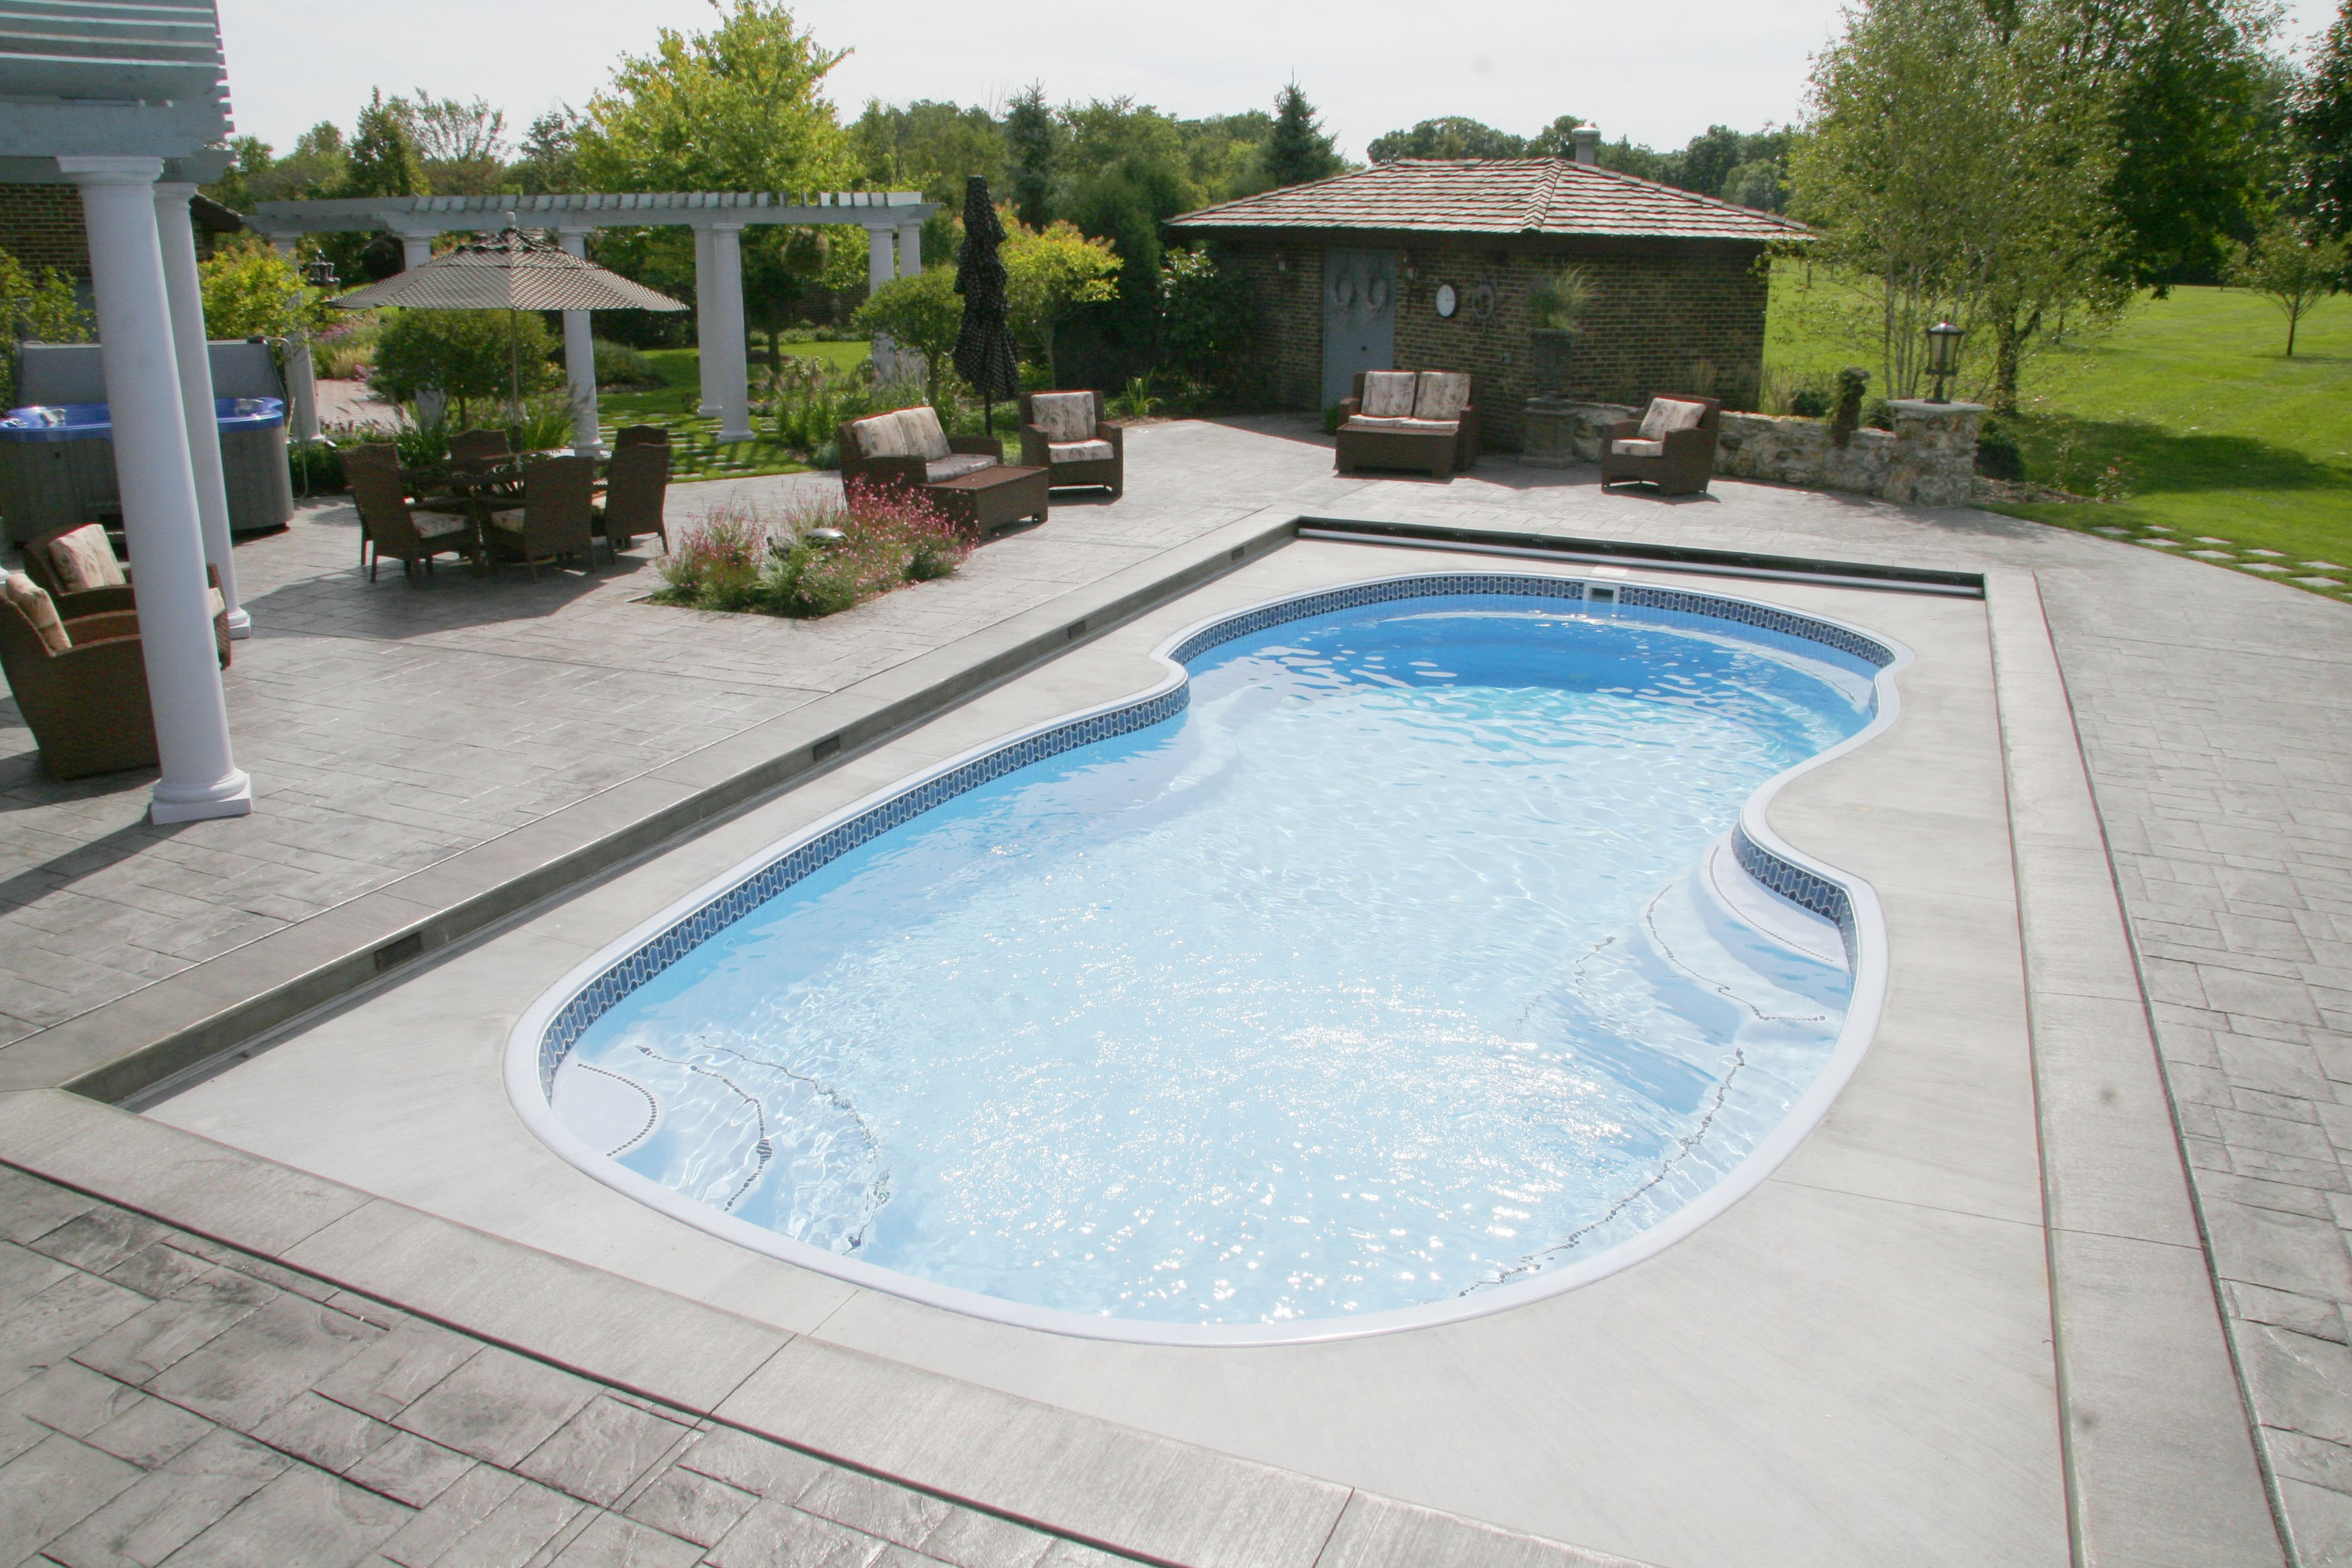 Desrochers backyard pools and spas coupons near me in for Pool showrooms near me